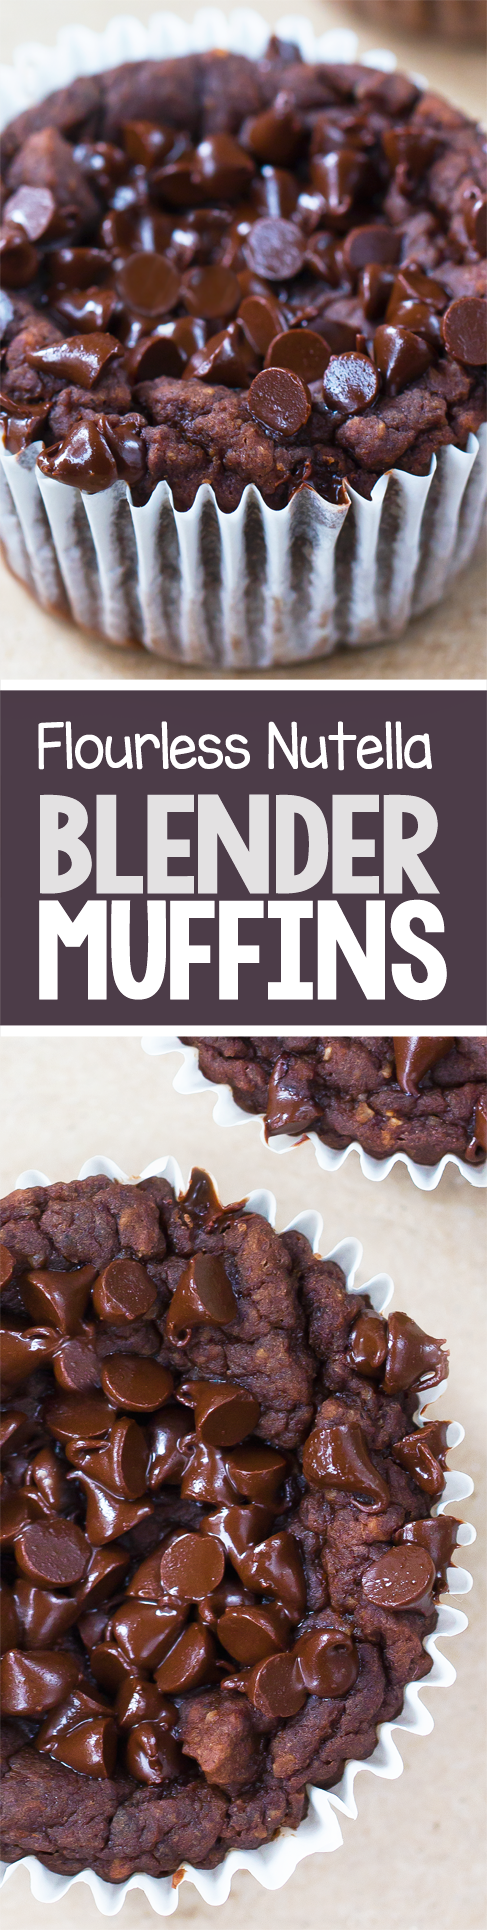 Nutella Blender Muffins - NO Flour!